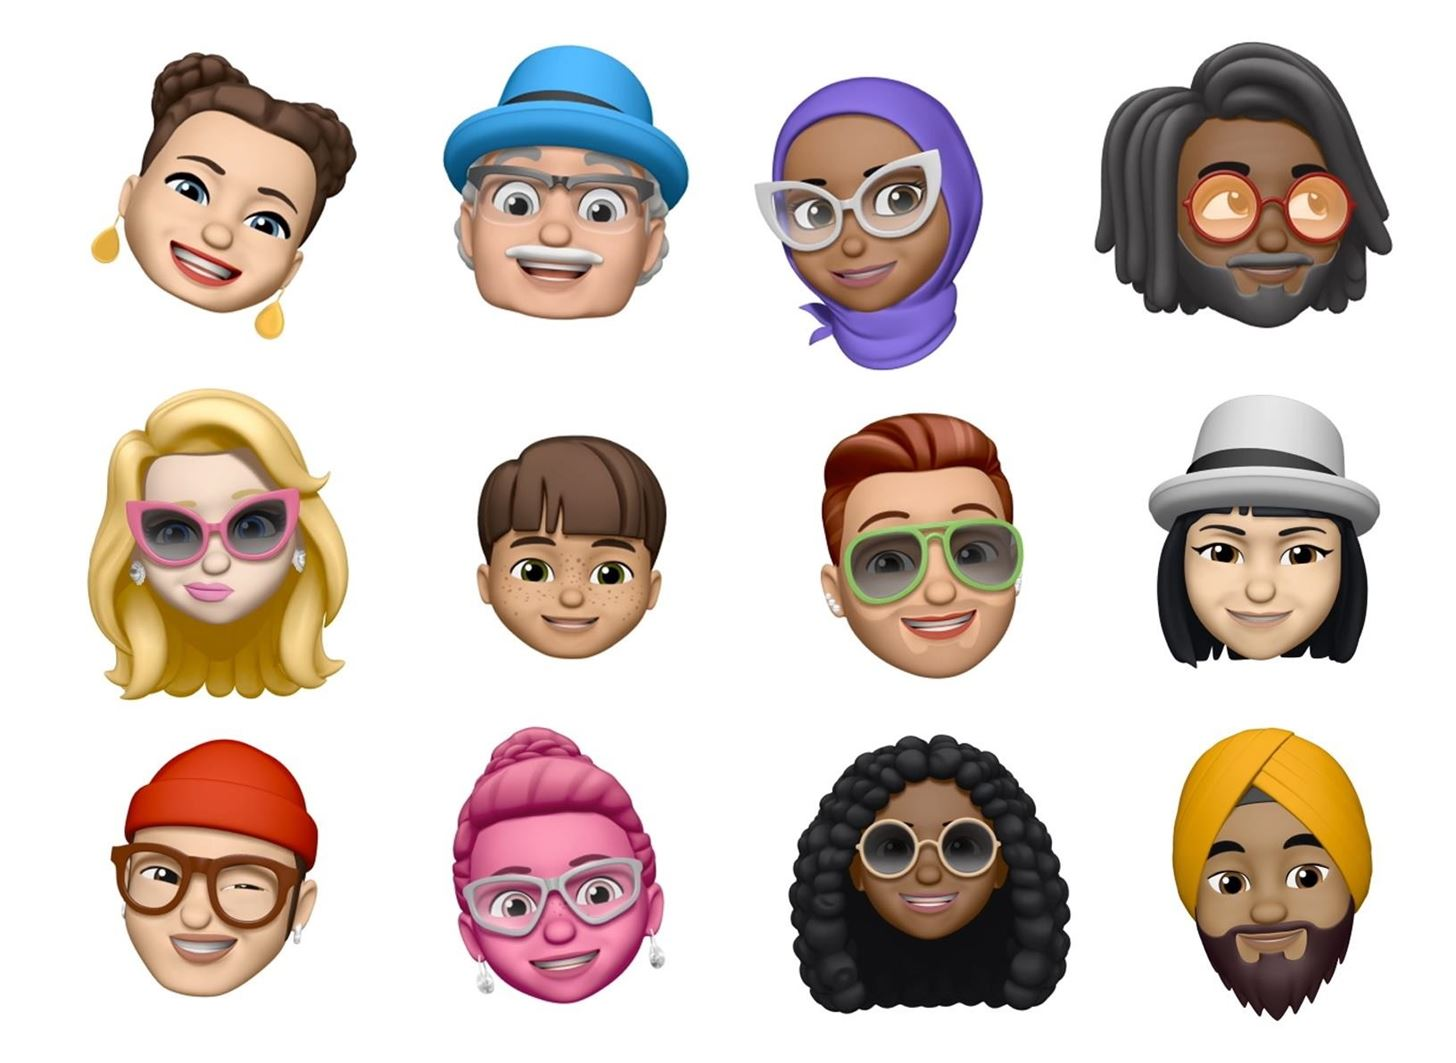 79 cool new iOS 12 features you do not know